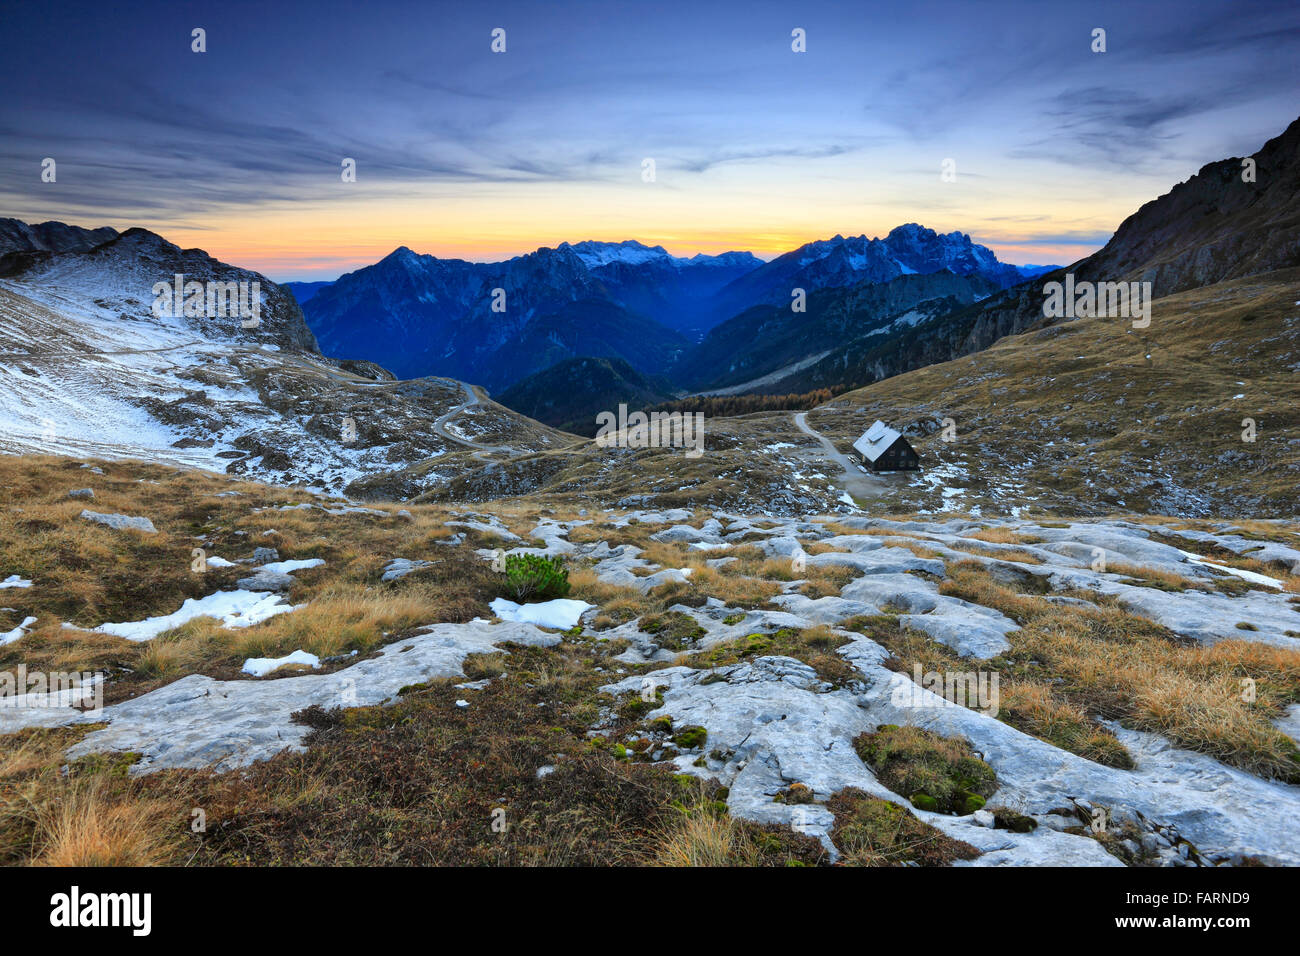 Mountains sunset landscape.Julian alps Slovenia and Italy. - Stock Image